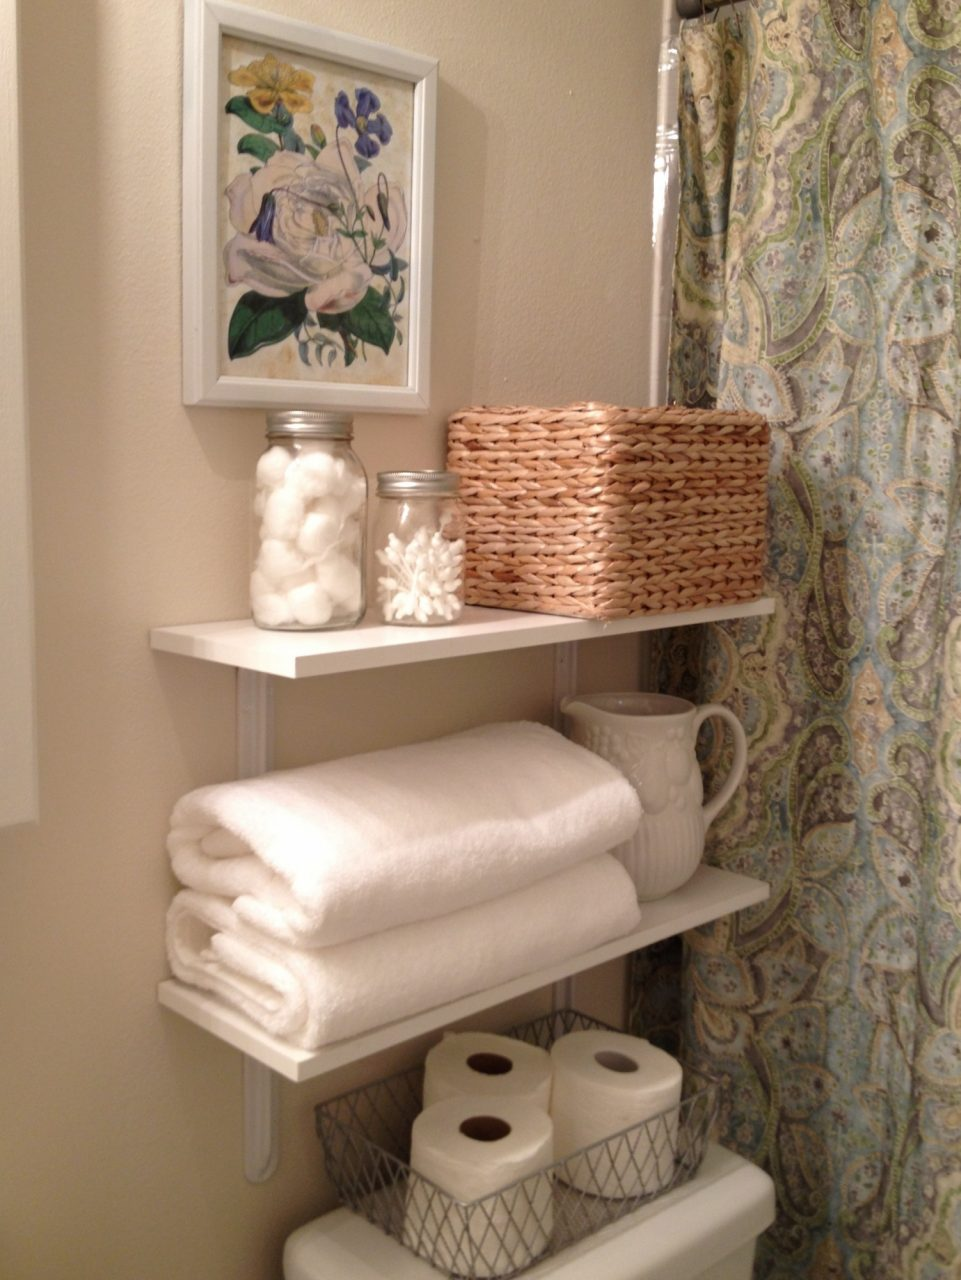 Decorations Bathroom Storage Shelves And Shelves Decors Bathroom